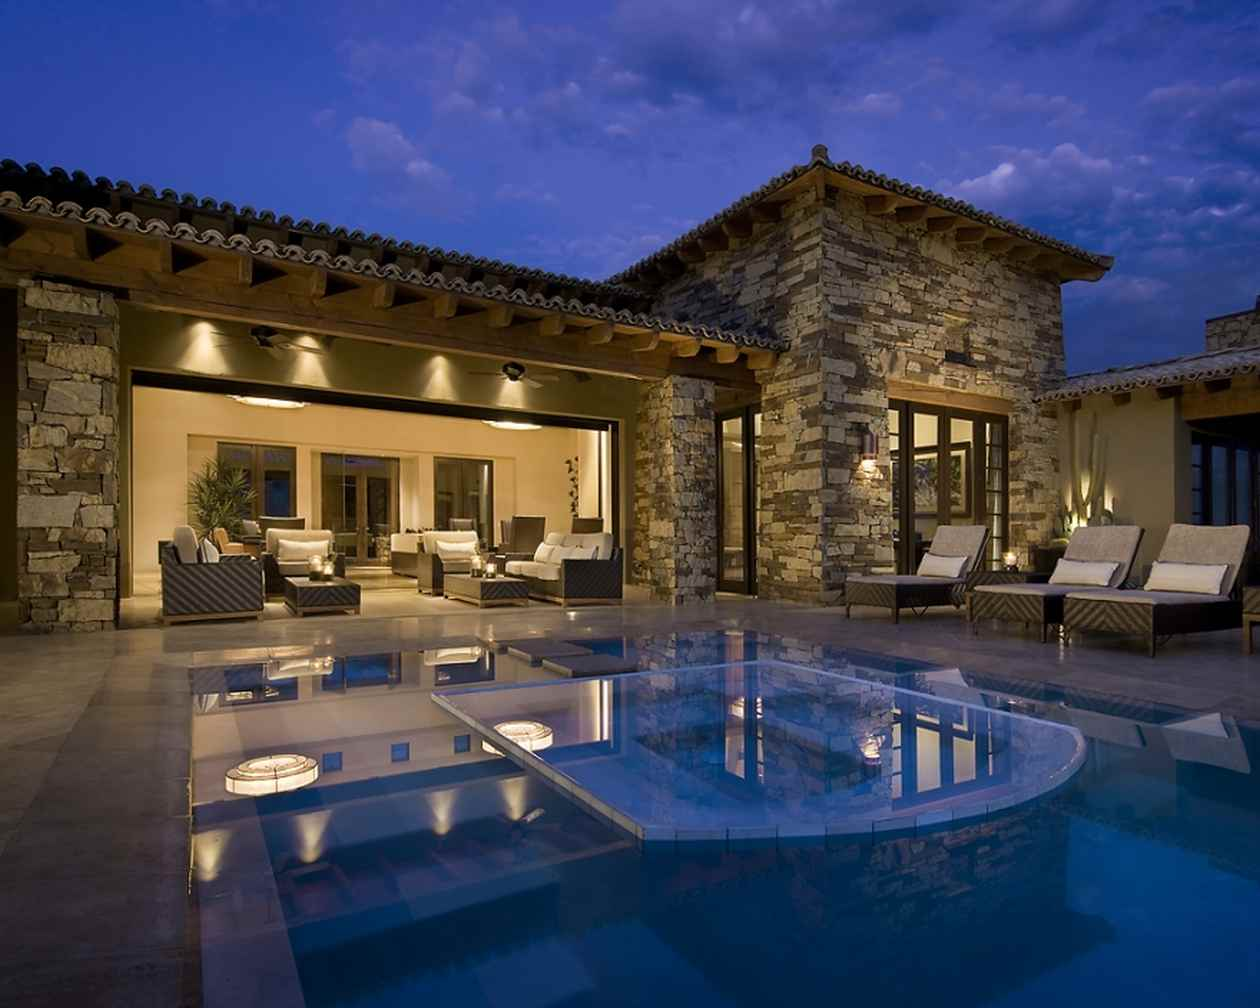 Home Trend For 2014: Green, Eco Friendly, Smaller & Smart Homes: Home Trends 2014 Green Cutting Edge Technological Luxurious And Entertaining Slate Stone Exterior Wall Small Luxury Home Design With Infinity Pool Lounge And Lighting Ideas